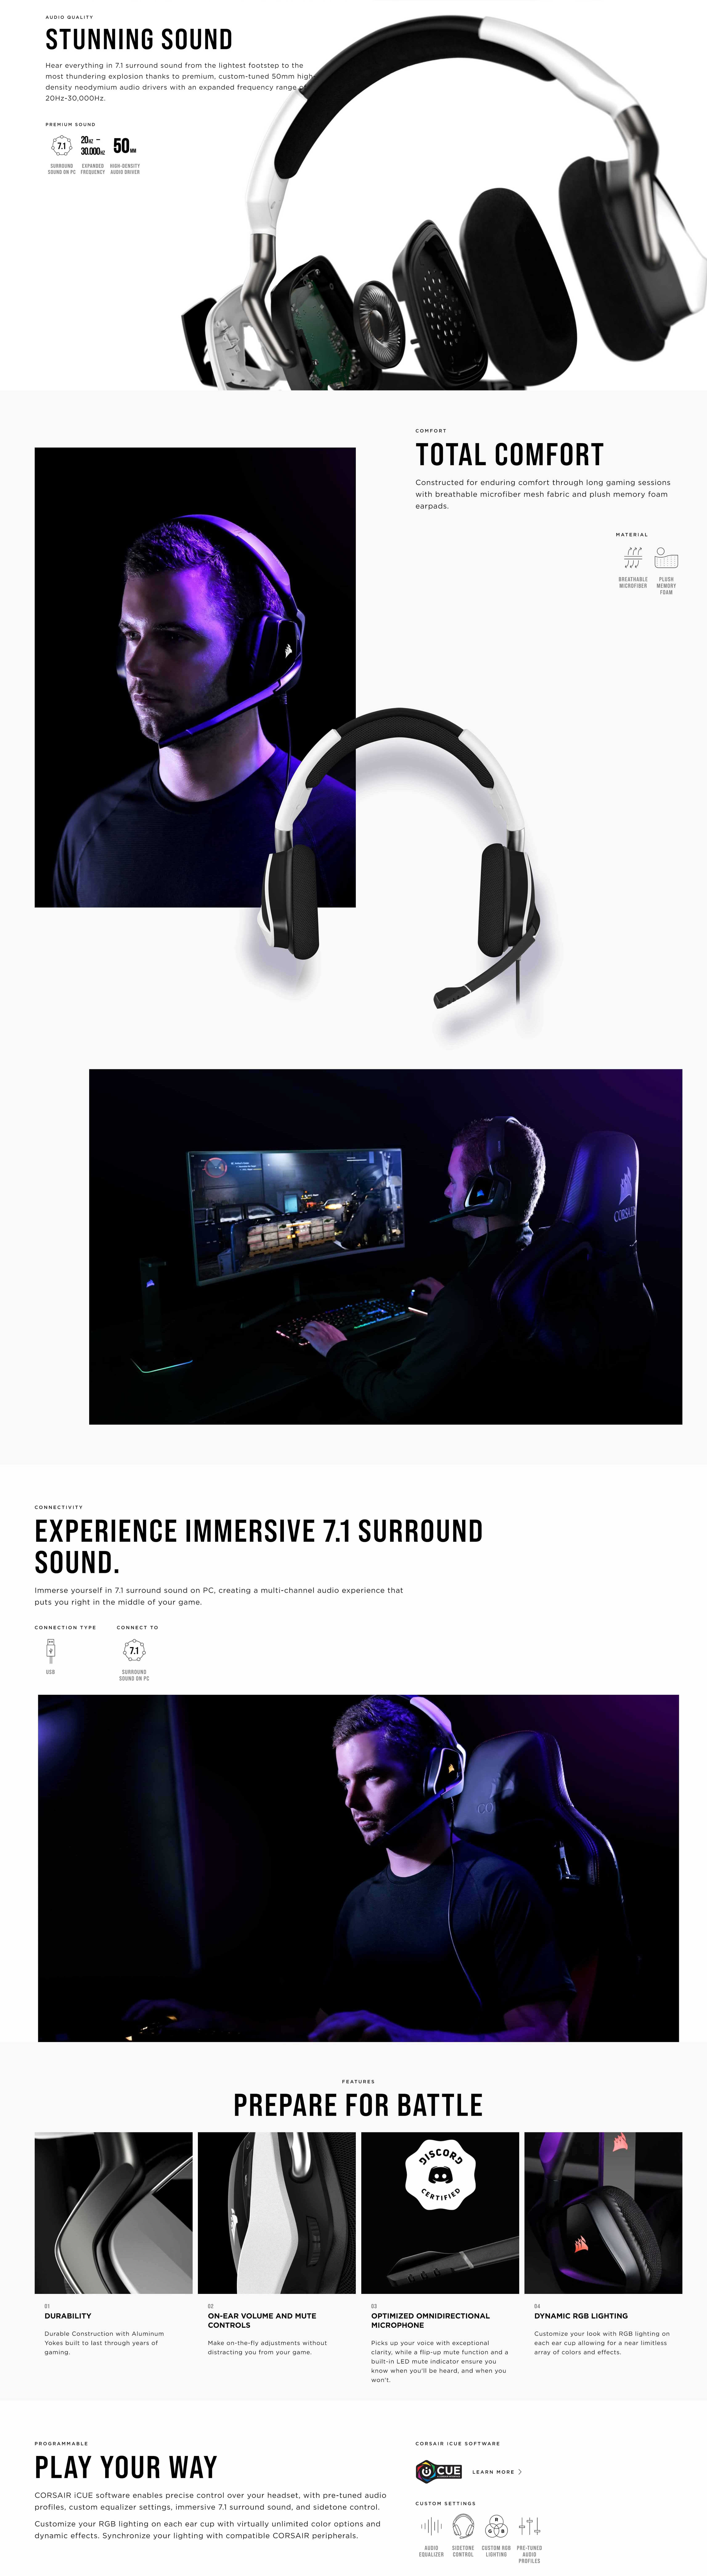 screencapture-corsair-us-en-Categories-Products-Gaming-Headsets-USB-Headsets-VOID-RGB-ELITE-USB-Premium-Gaming-Headset-with-7-1-Surround-Sound-p-CA-9011203-NA-2020-01-0.jpg